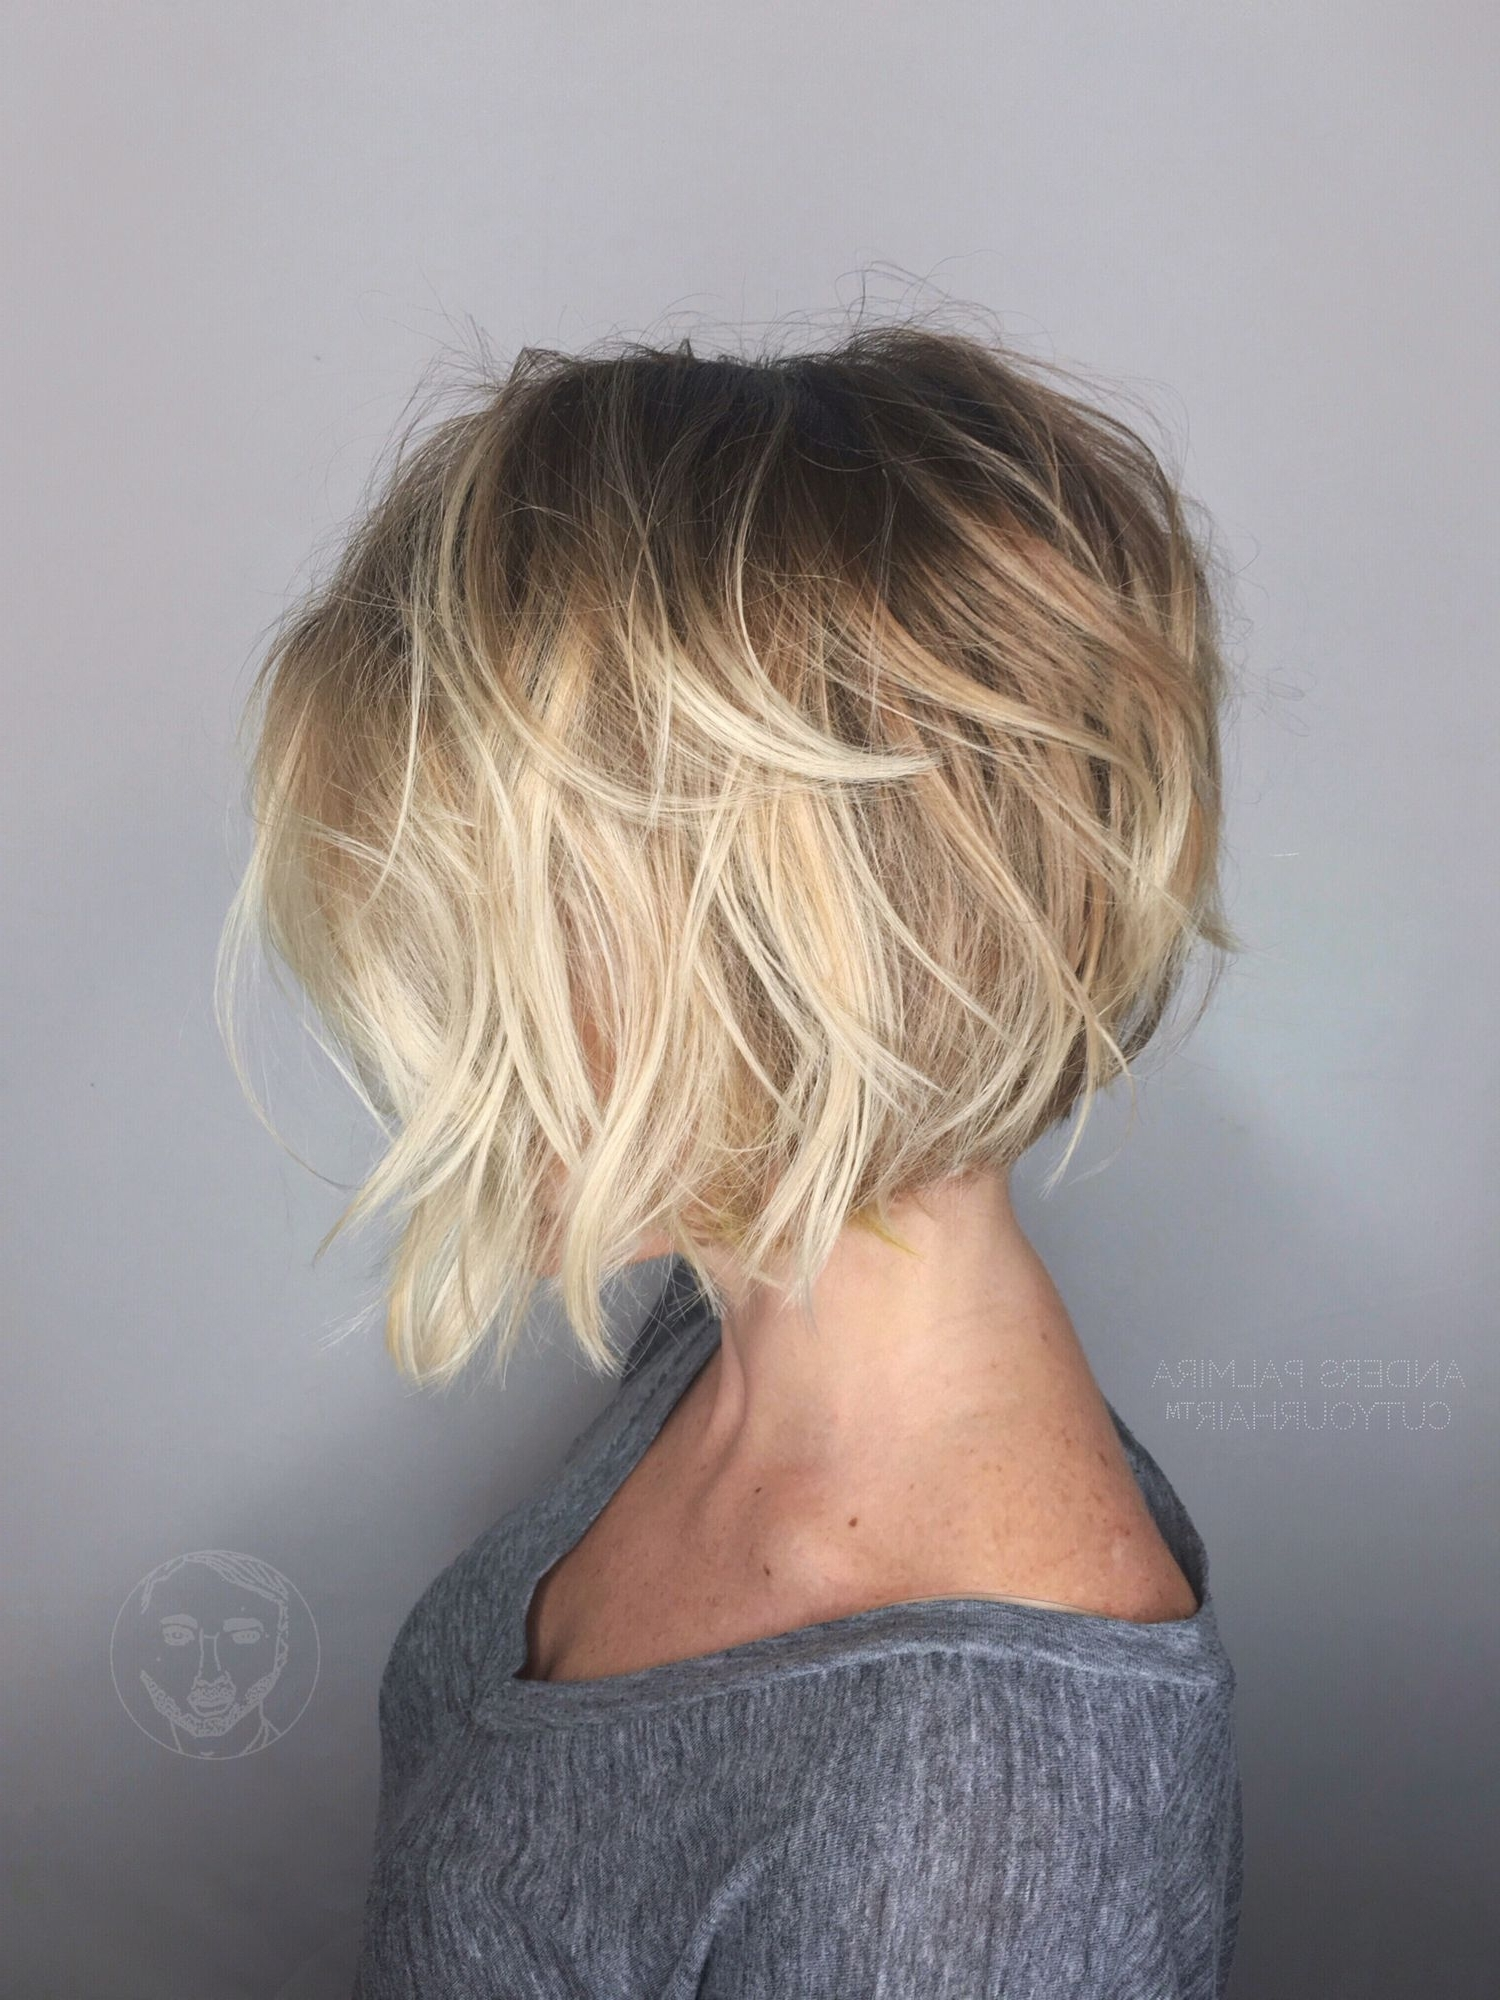 Aveda Wavy Long Blonde Bob Short Hair Beach Wave Medium Ideas Lob Throughout Well Known Medium Blonde Bob With Spiral Curls (View 2 of 20)